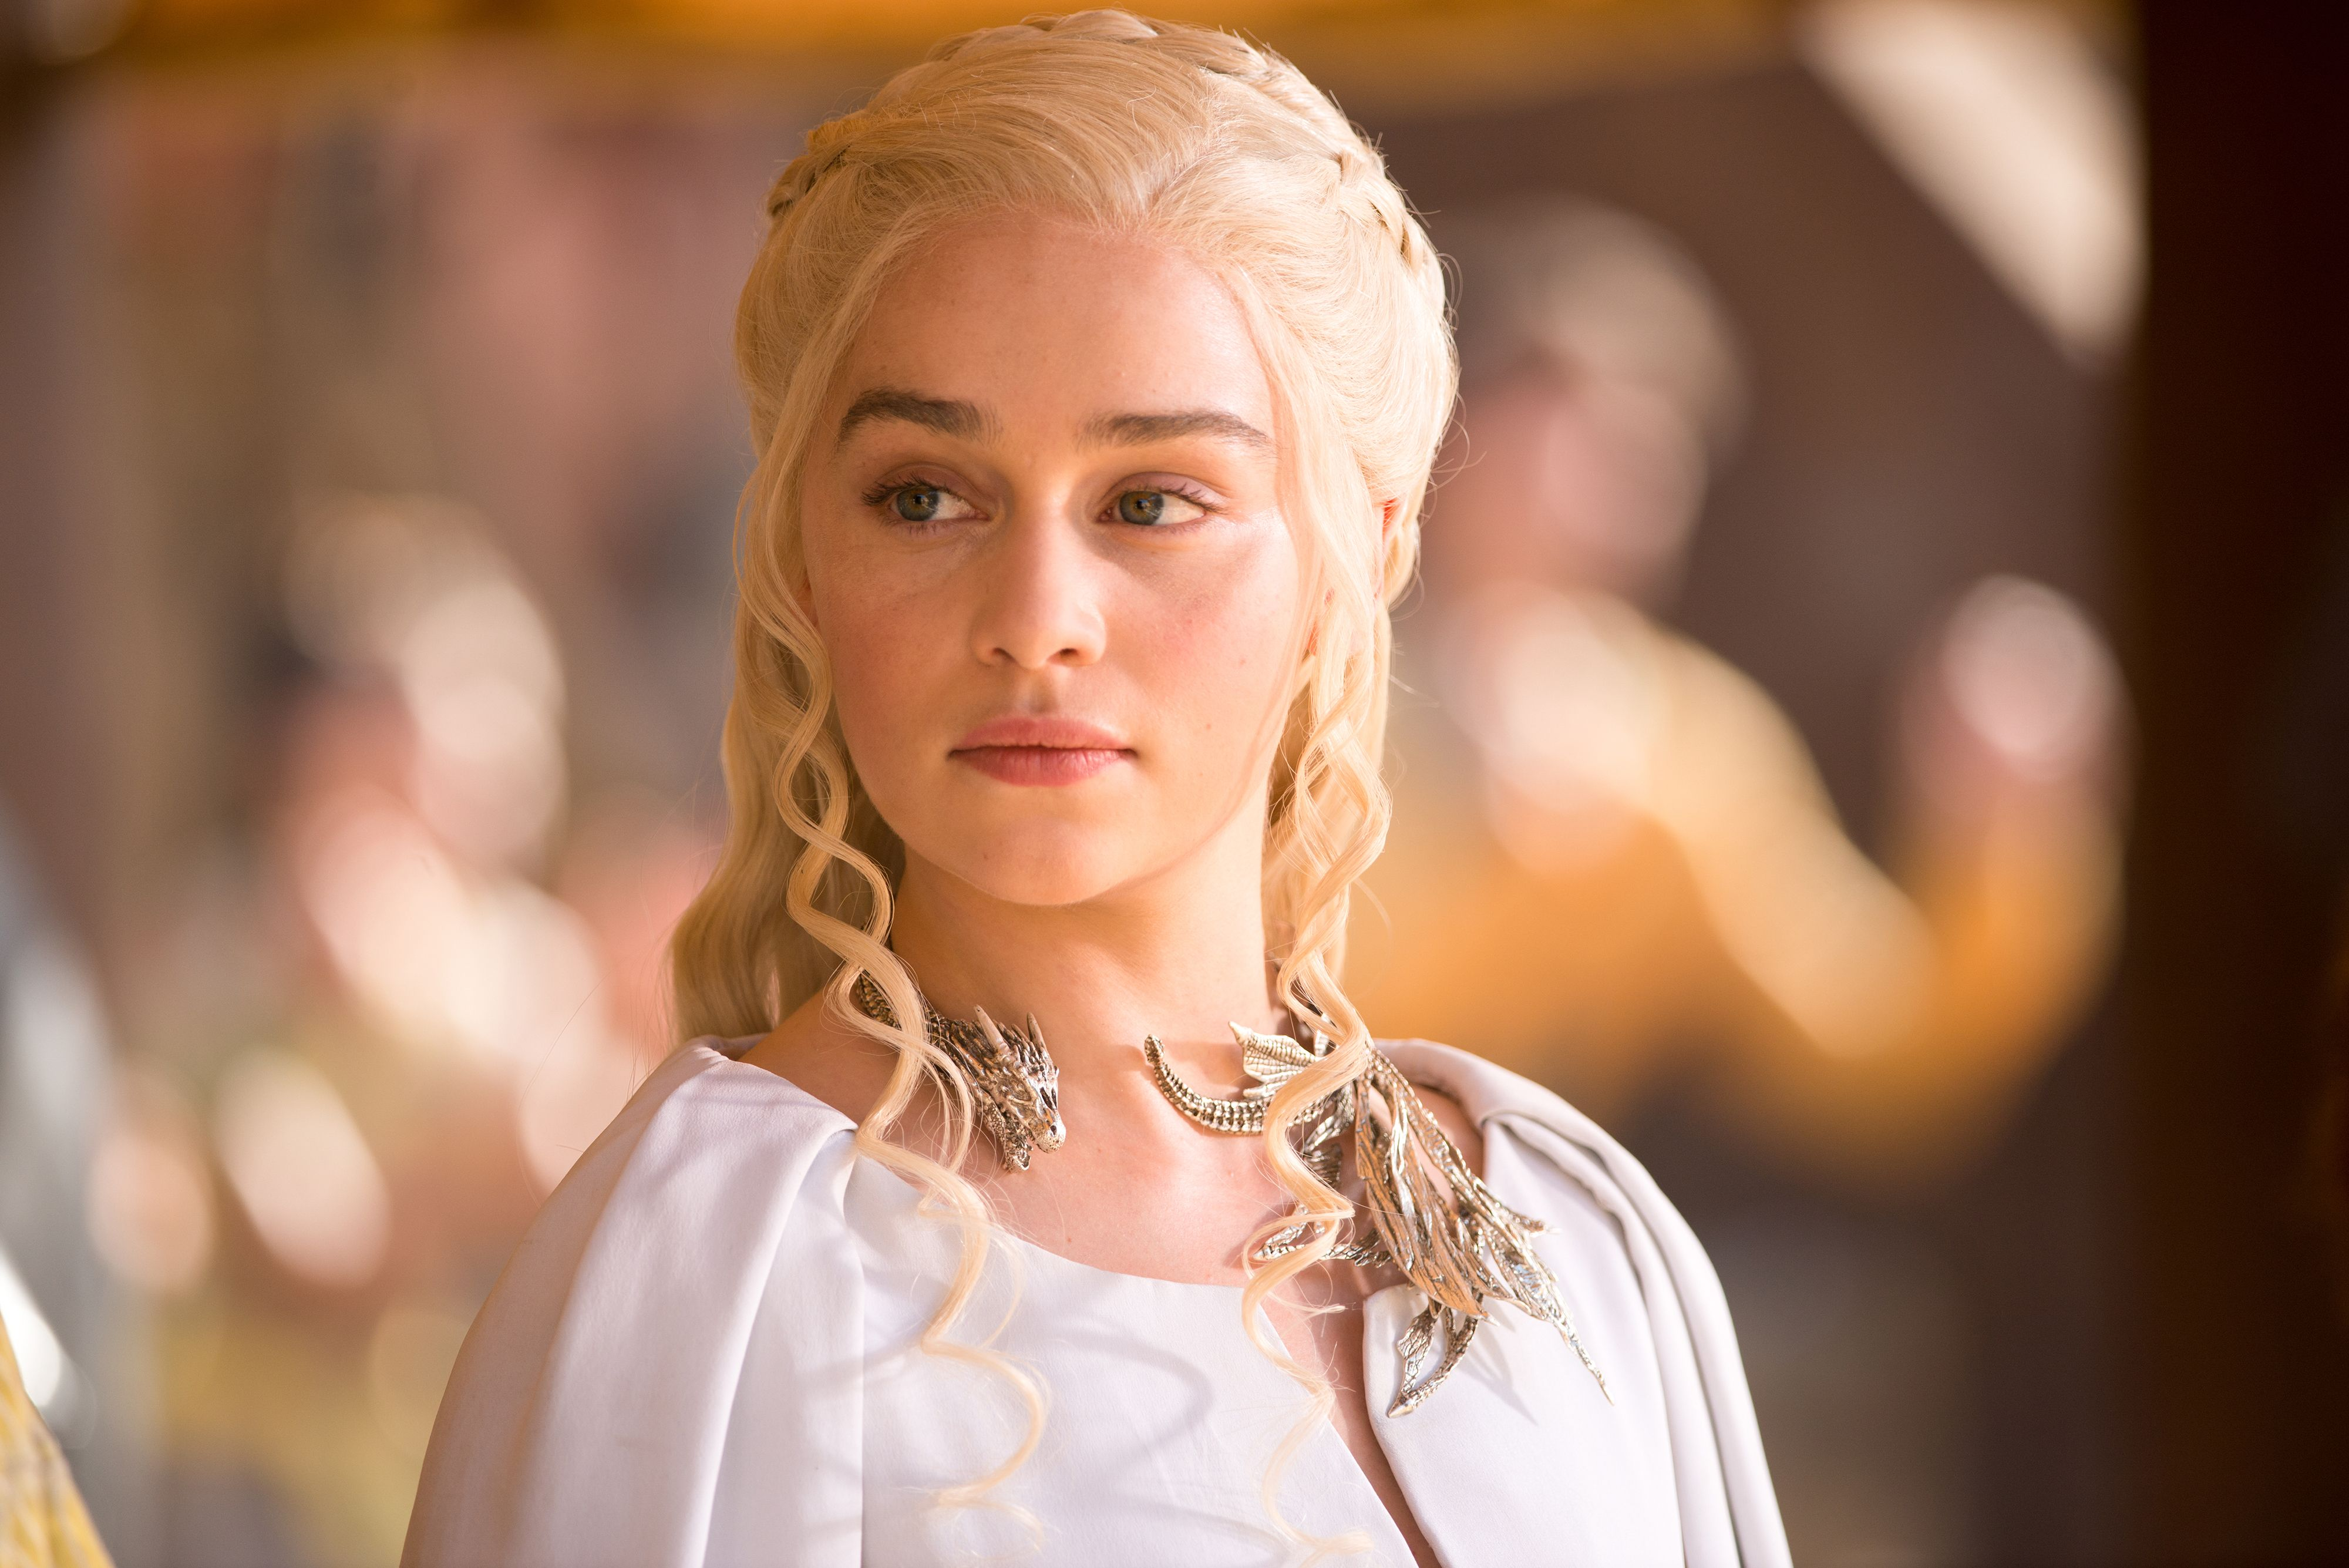 Game of thrones season 1 episode 9 dothraki subtitles download